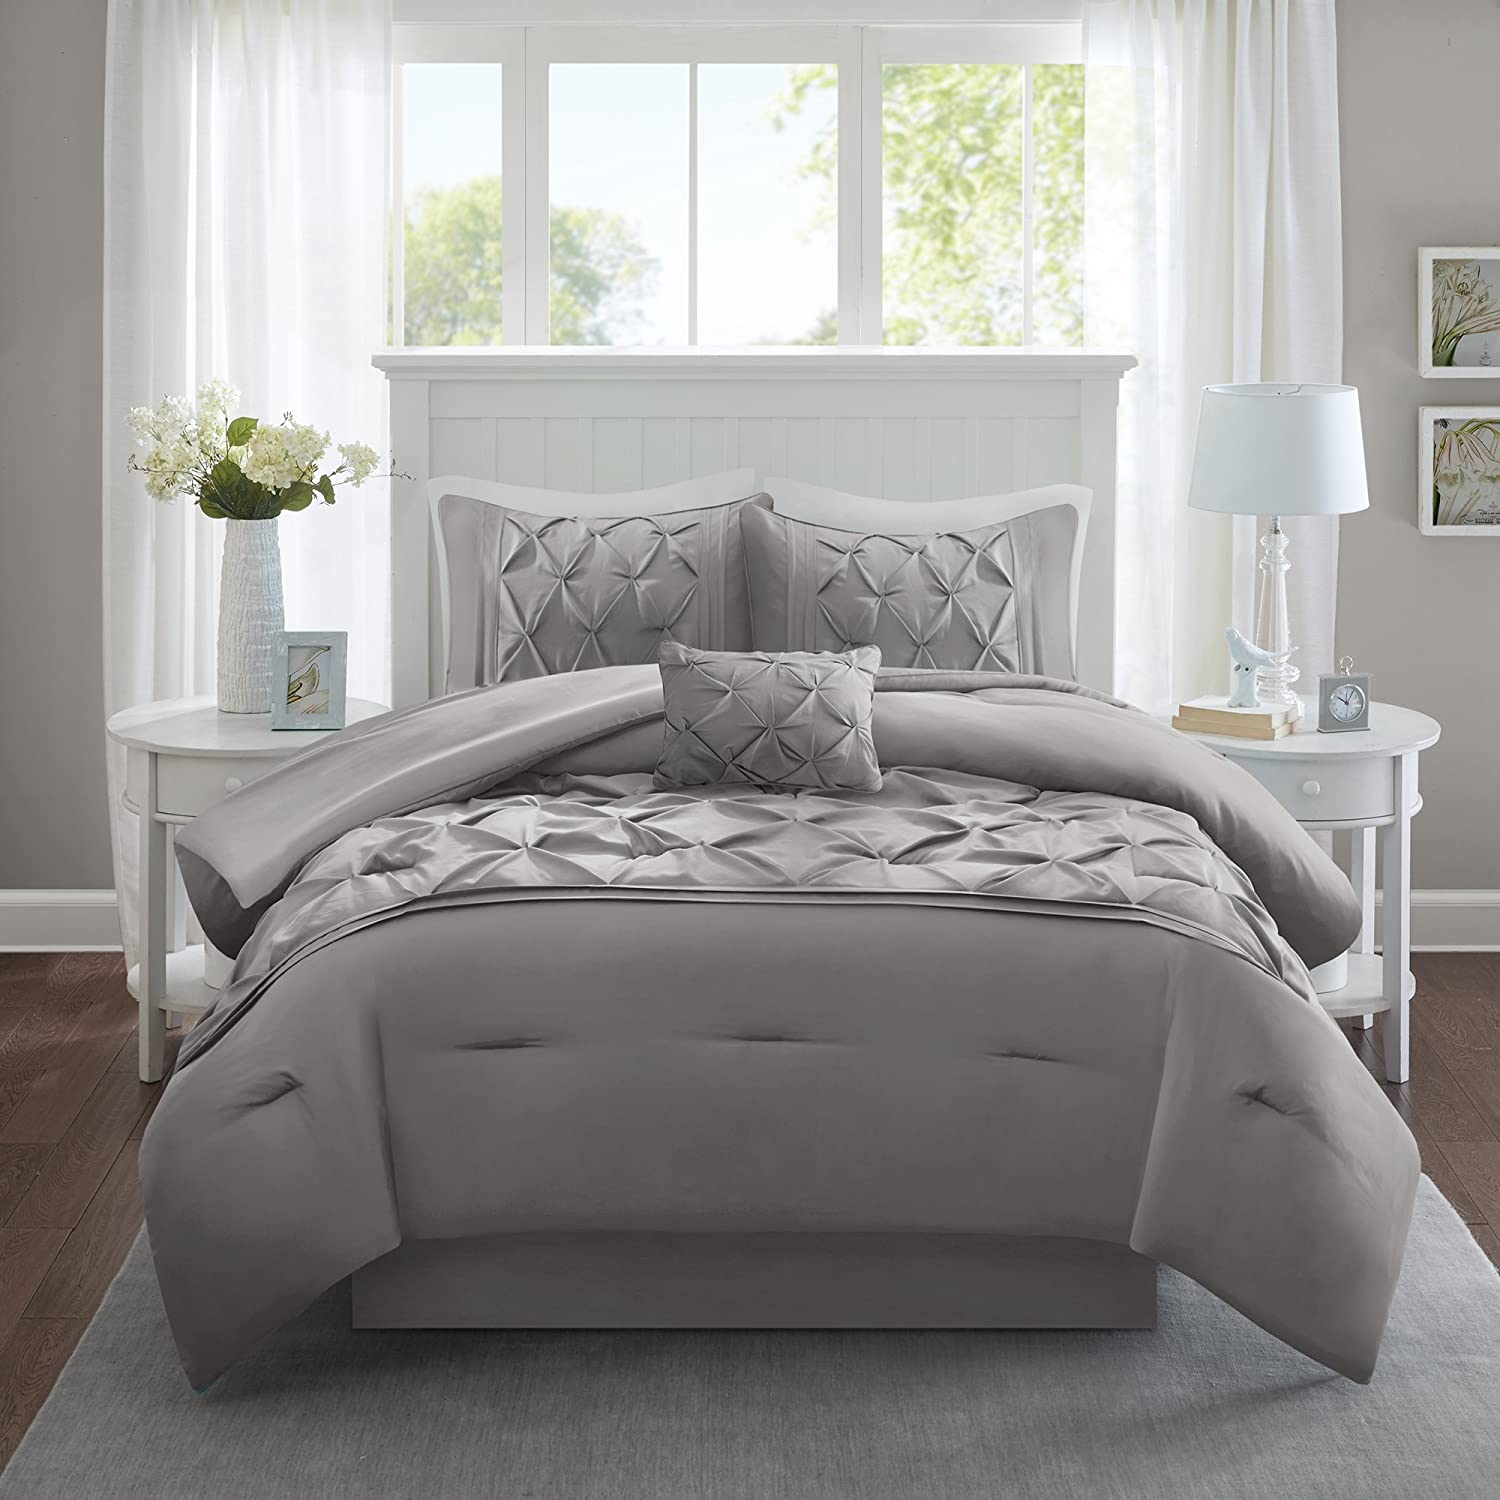 Comfort Spaces – Cavoy Comforter Set - 5 Piece – Tufted Pattern